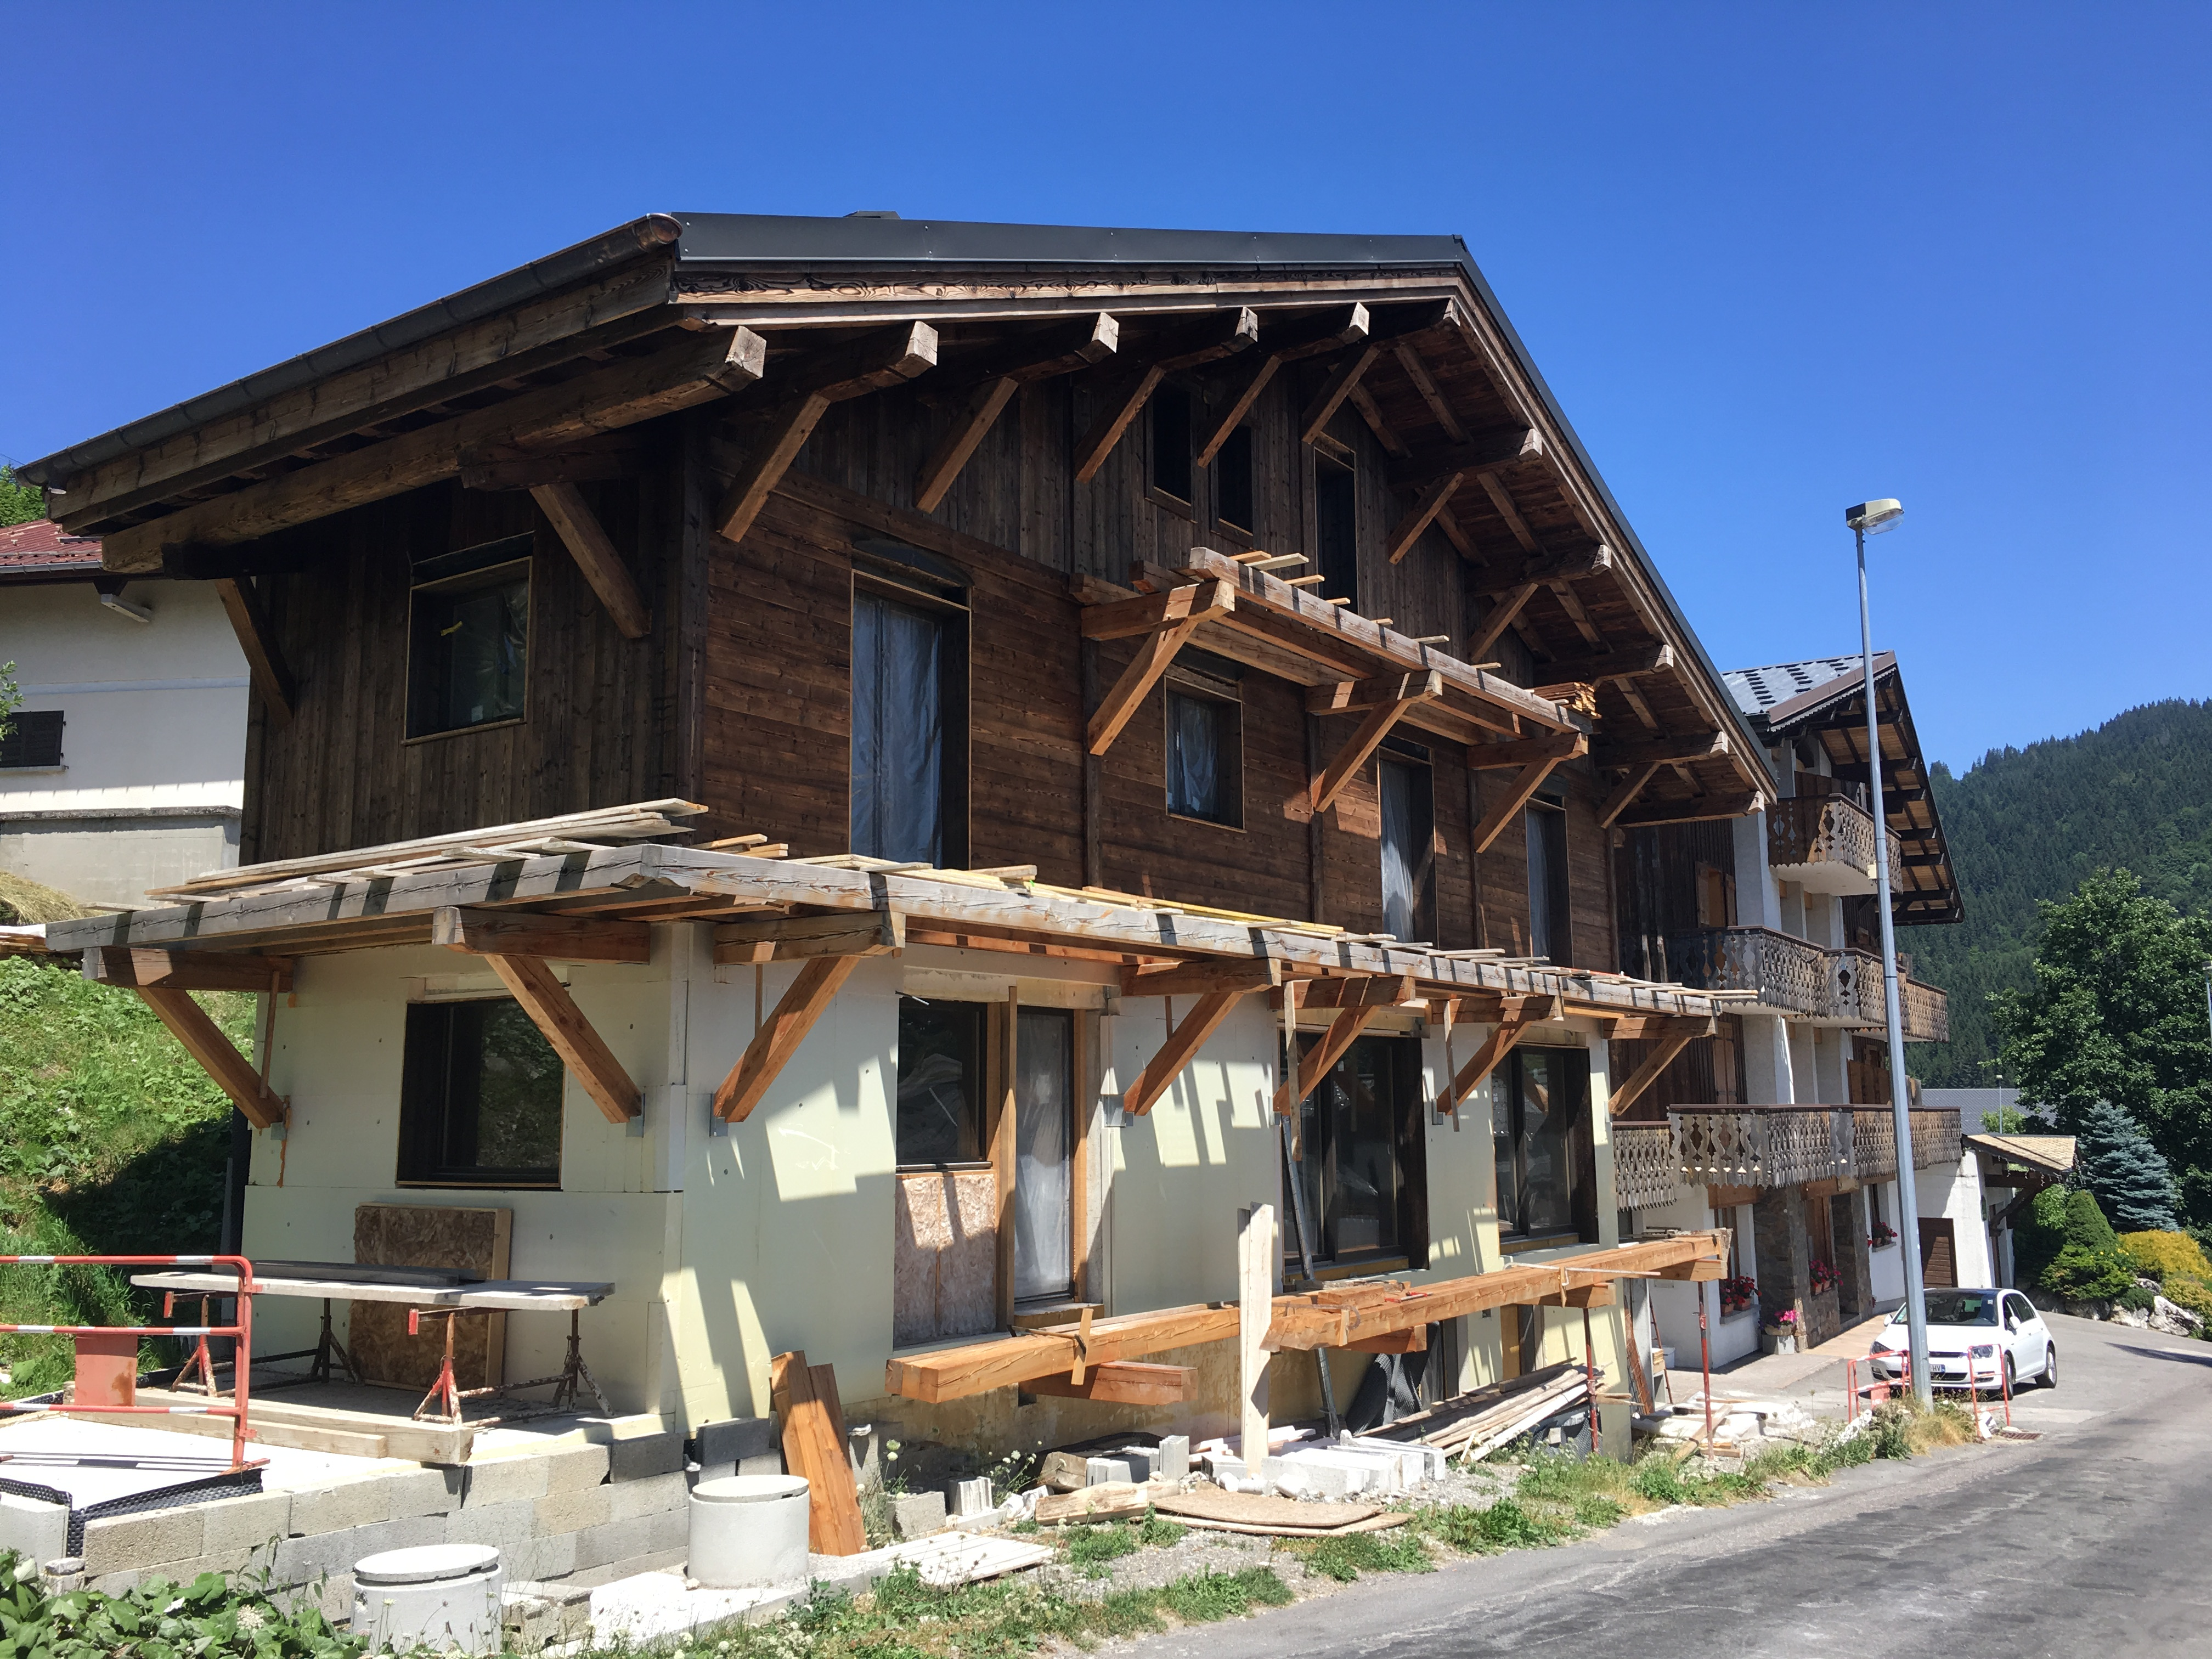 New chalet building work